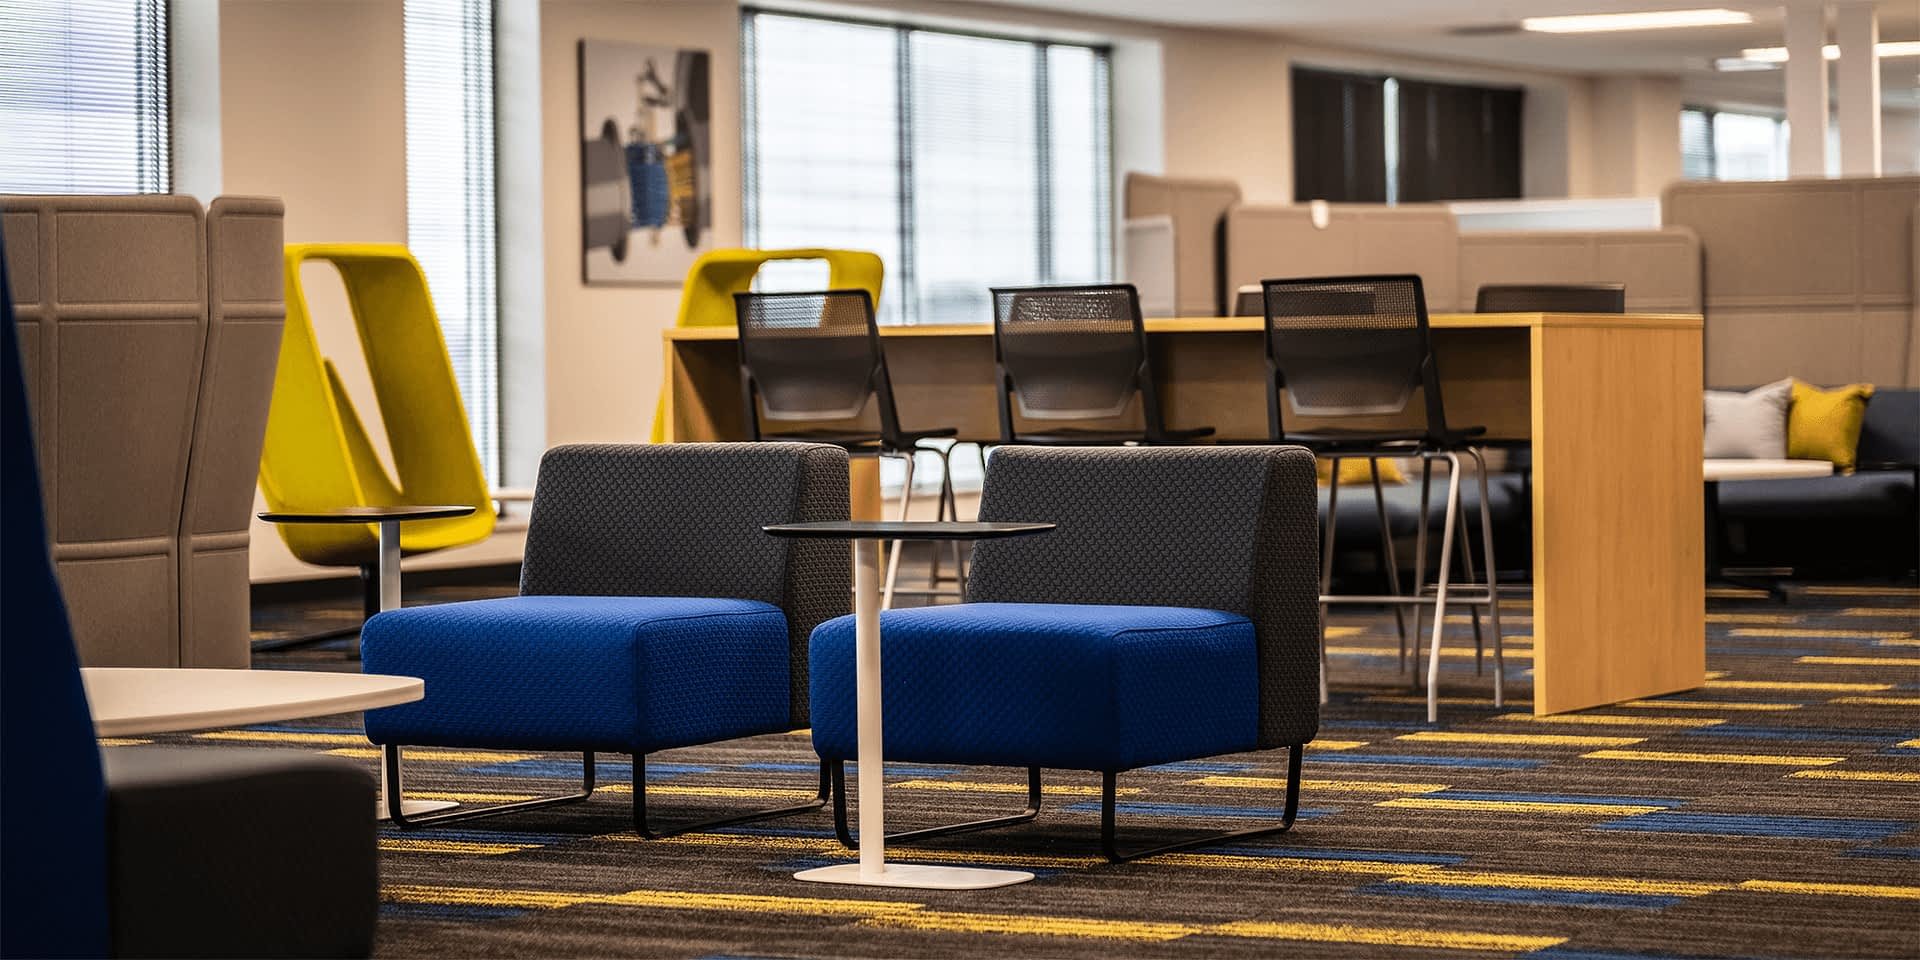 large open office space bright colored furniture